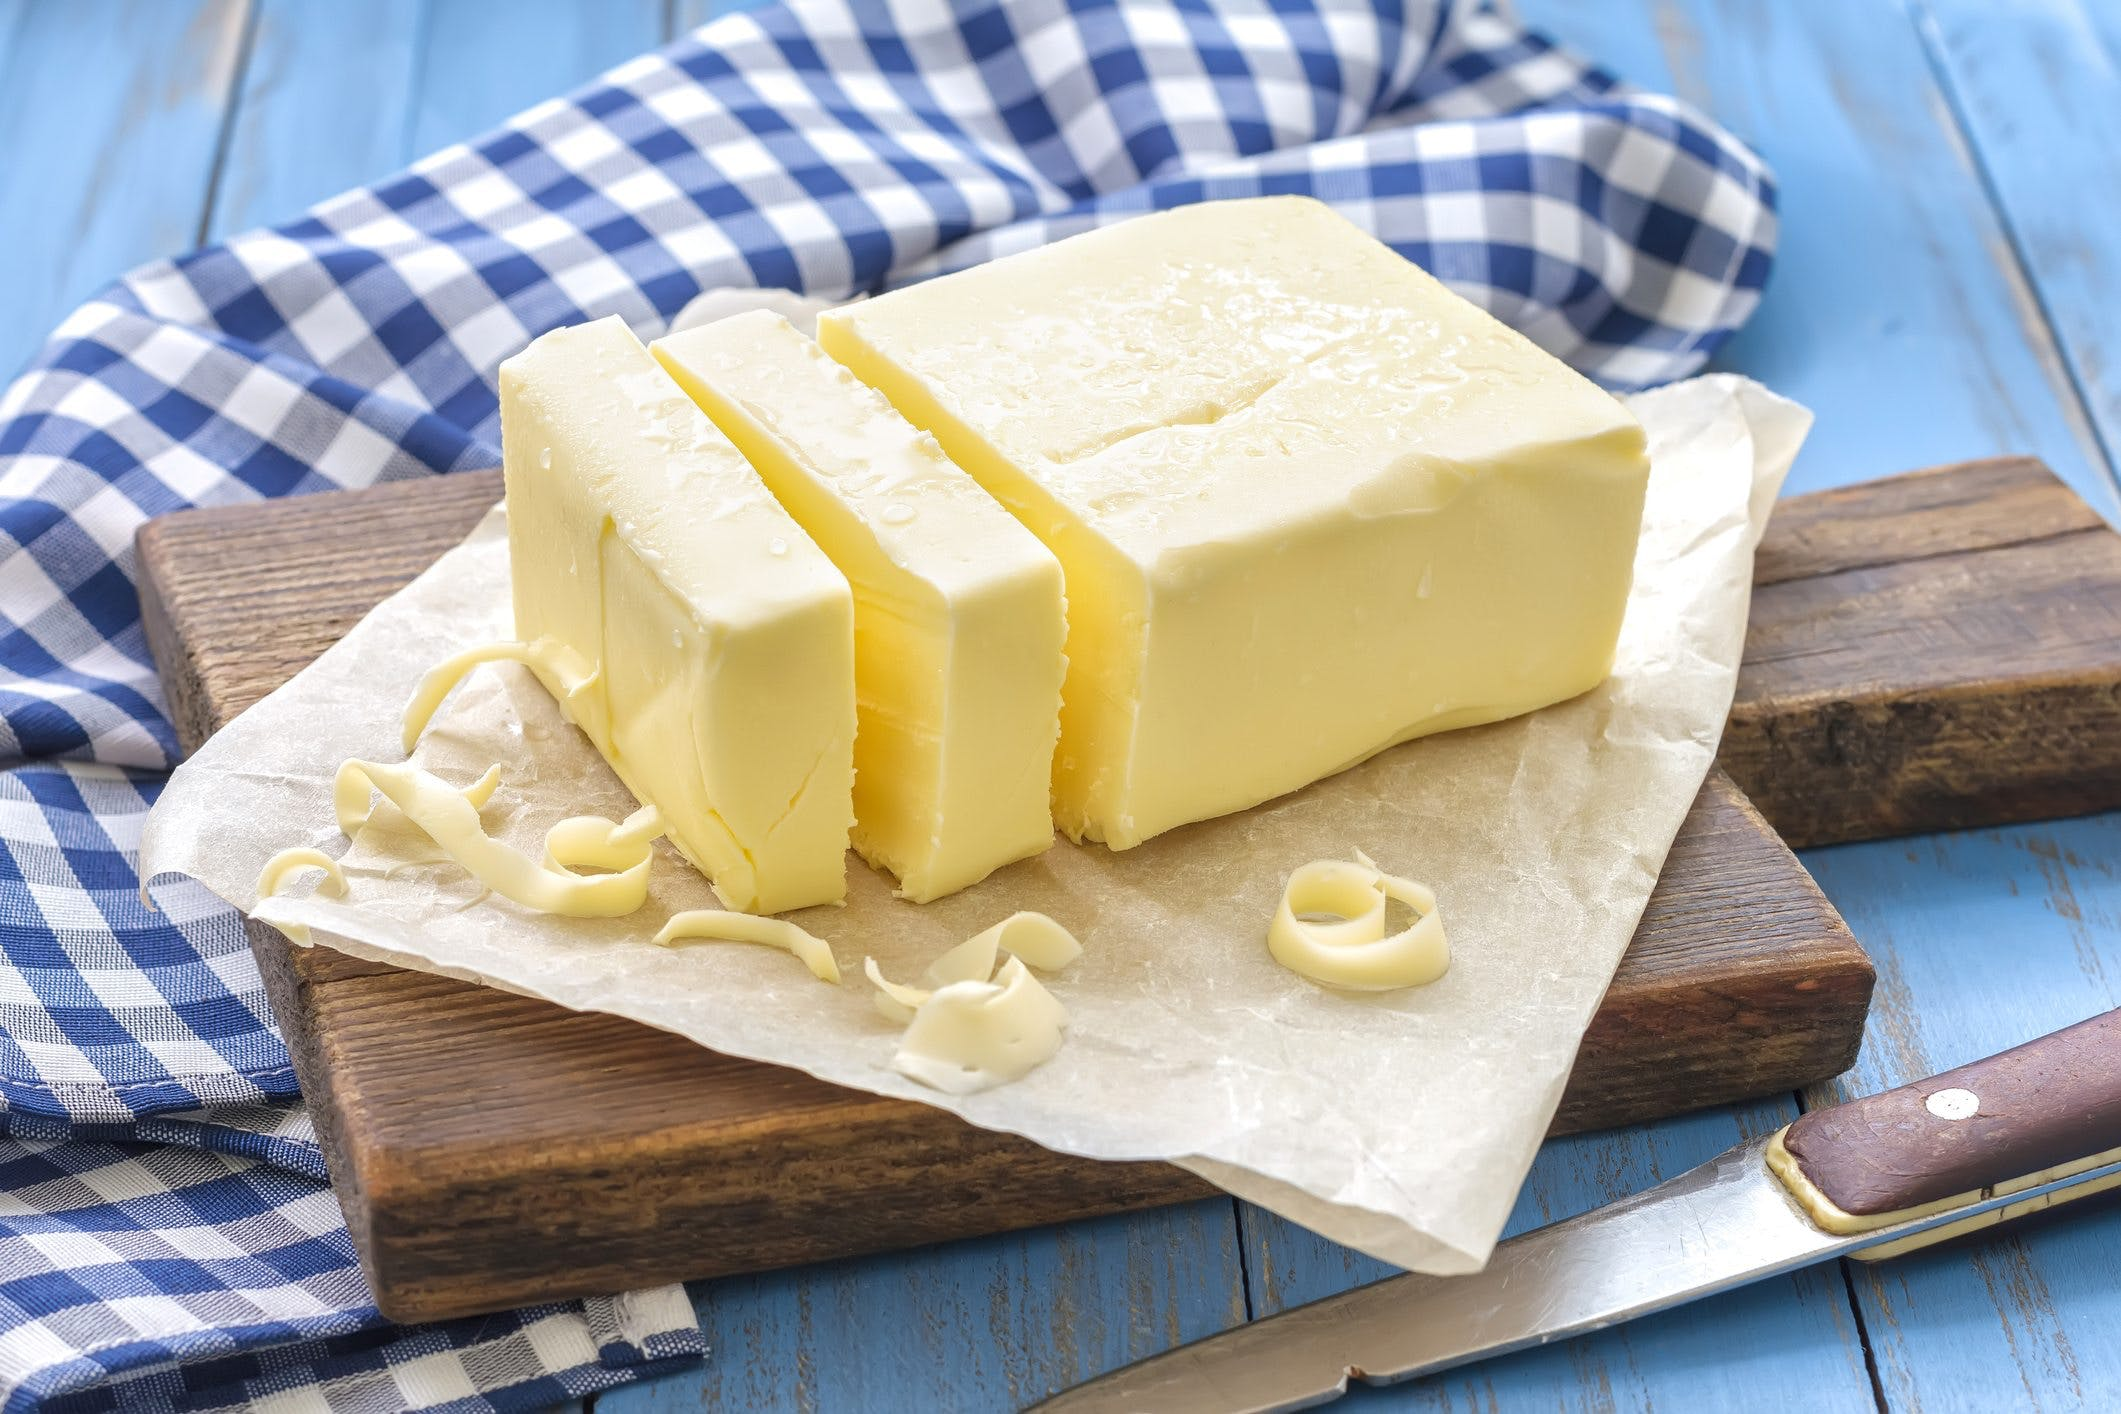 New Study: High-Fat Diet Reversed Obesity and Improved Risk Factors